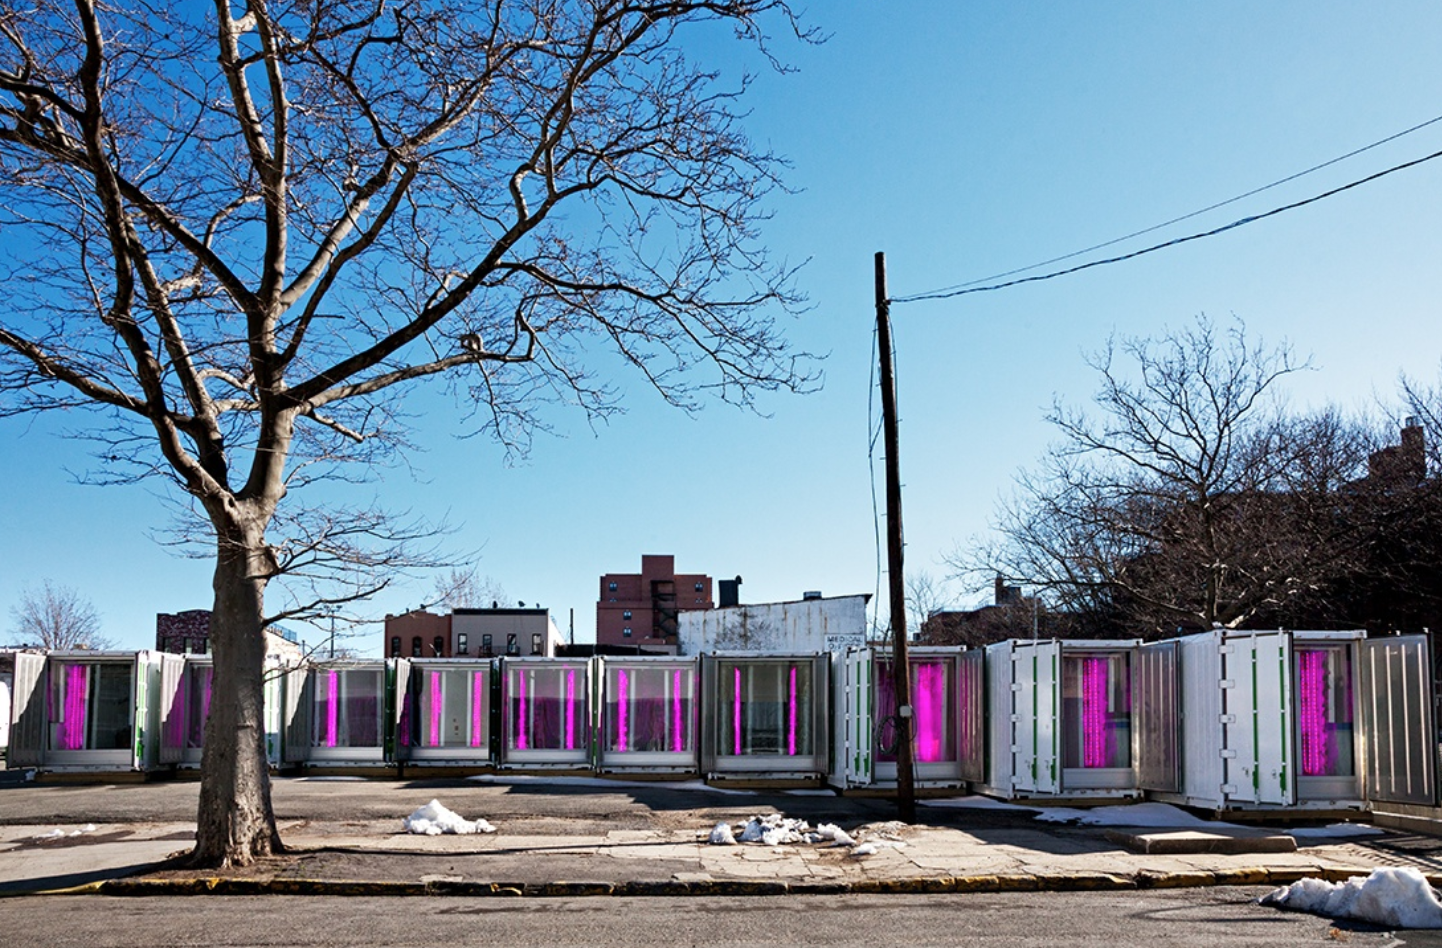 Shipping container farms expanding to grocery stores around the country